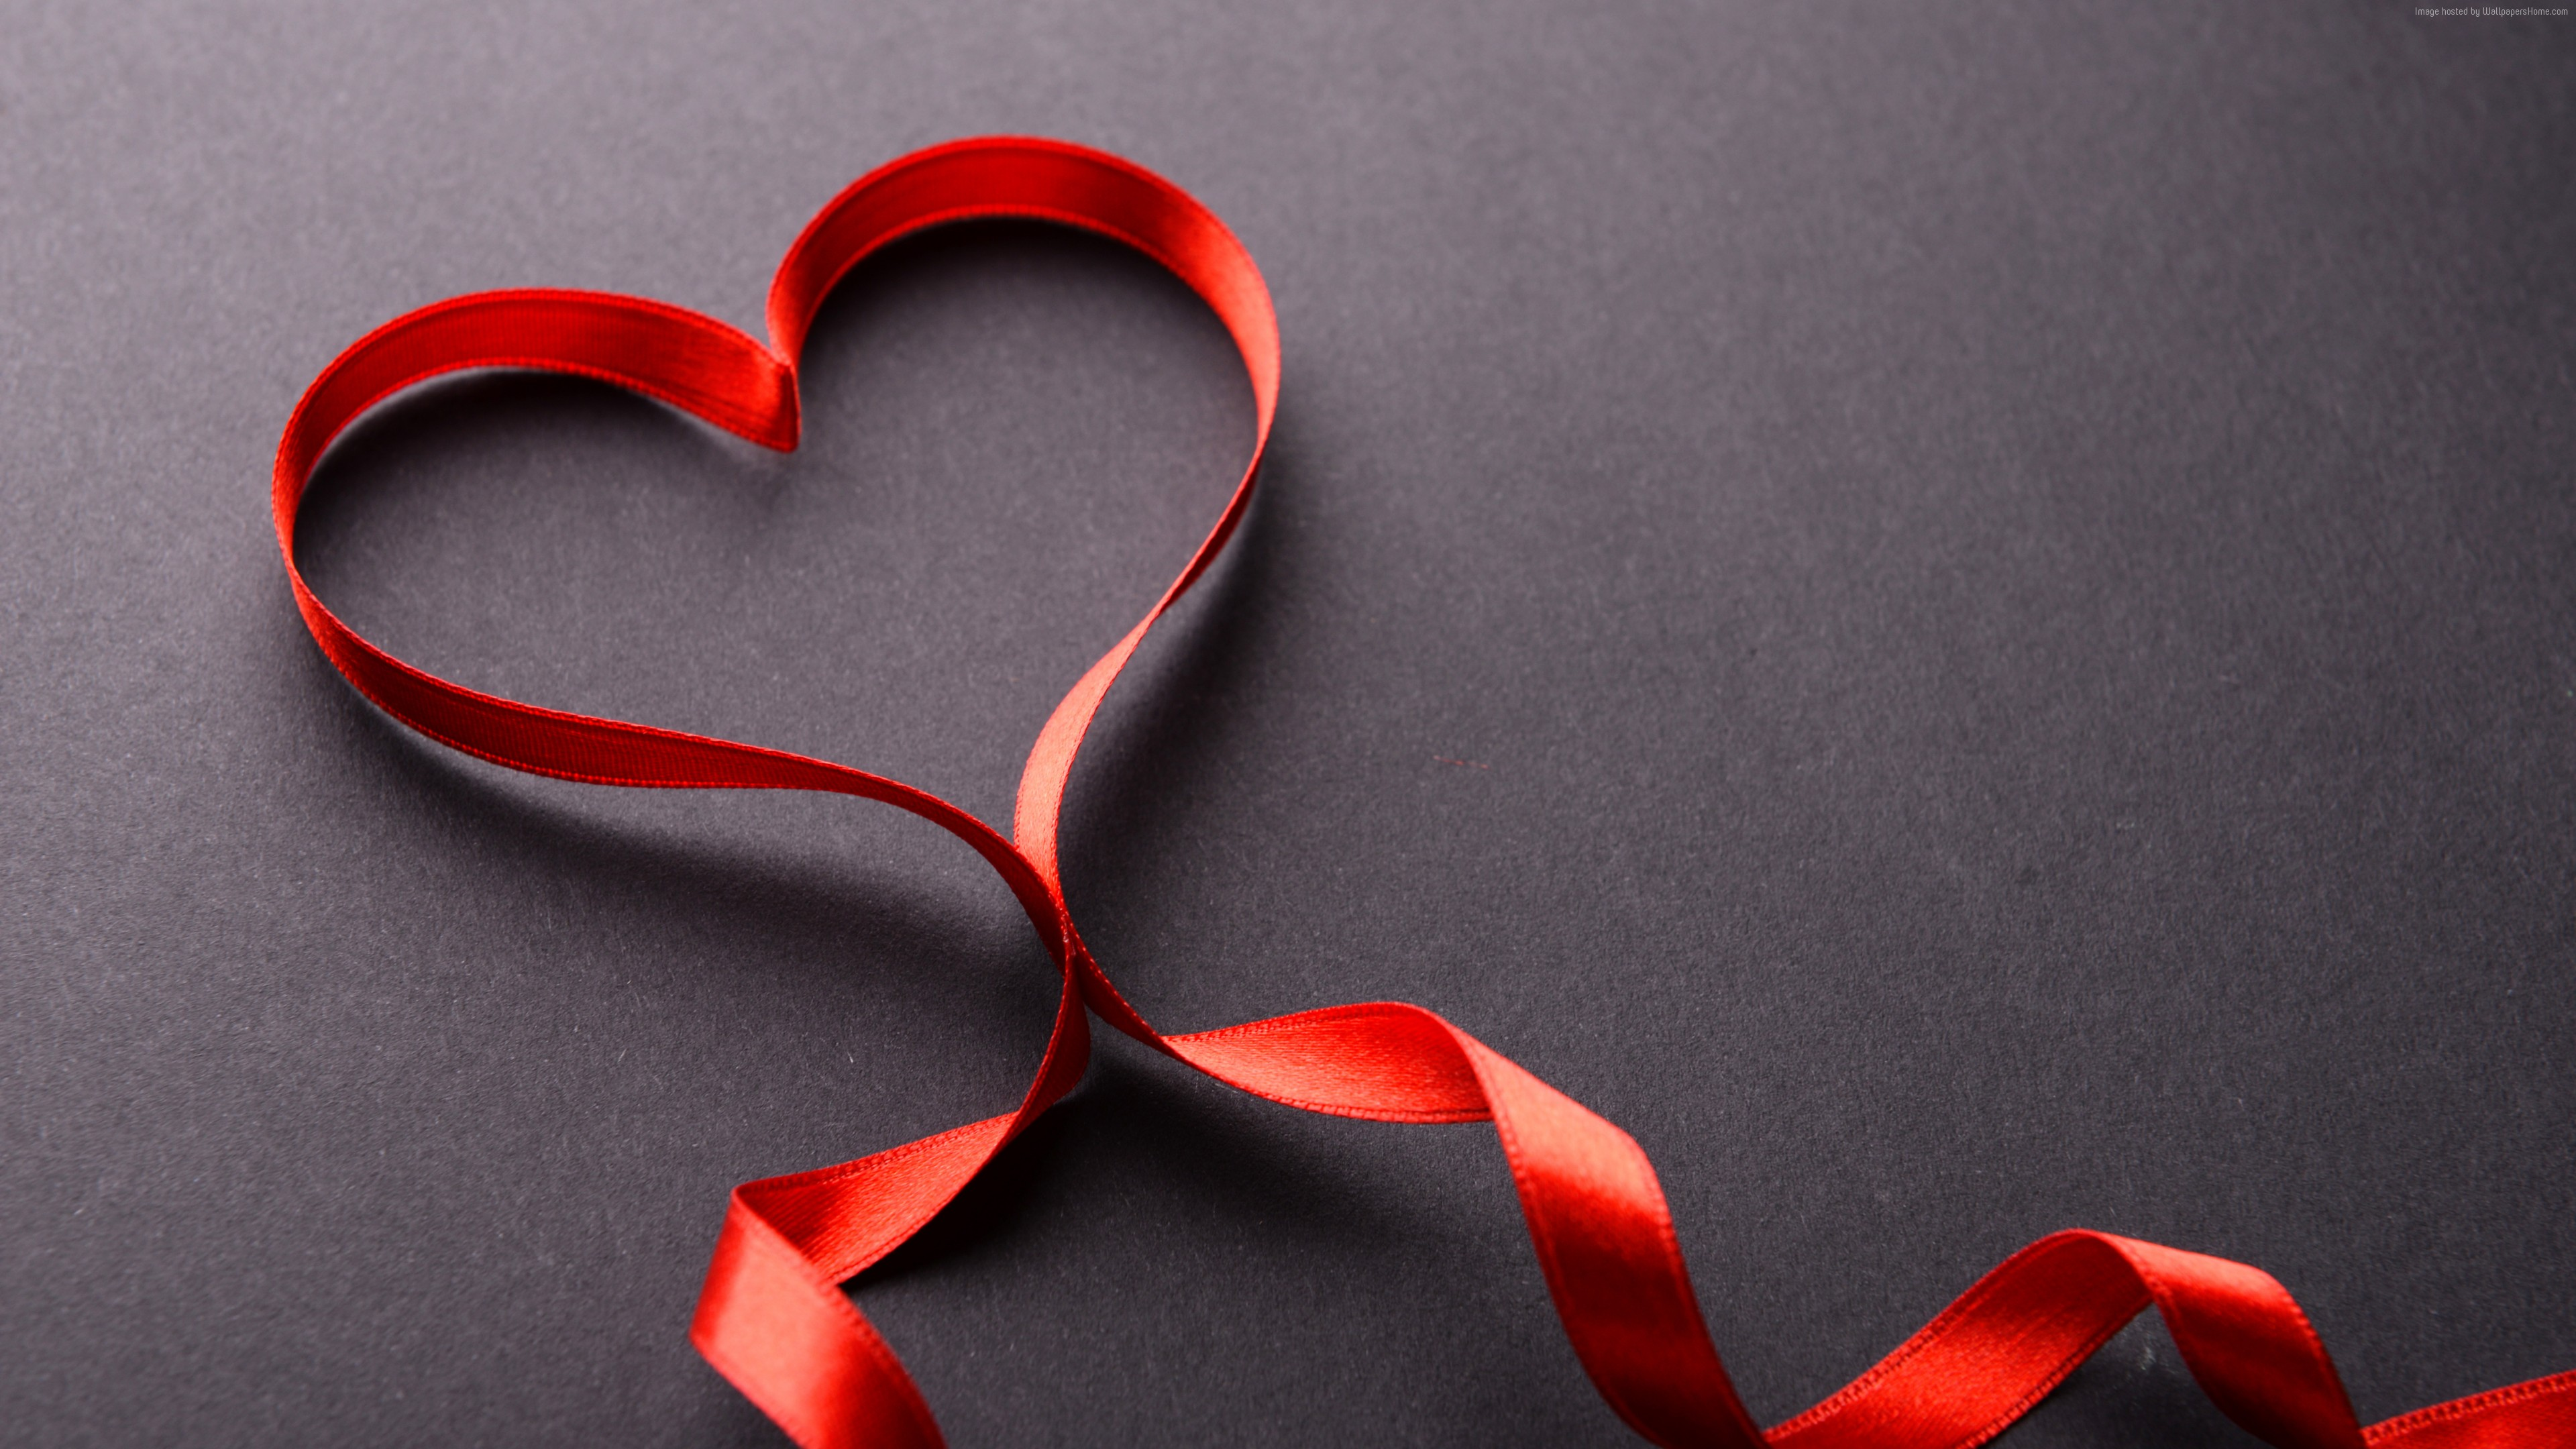 Stock Images love image, heart, ribbon, 5k, Stock Images